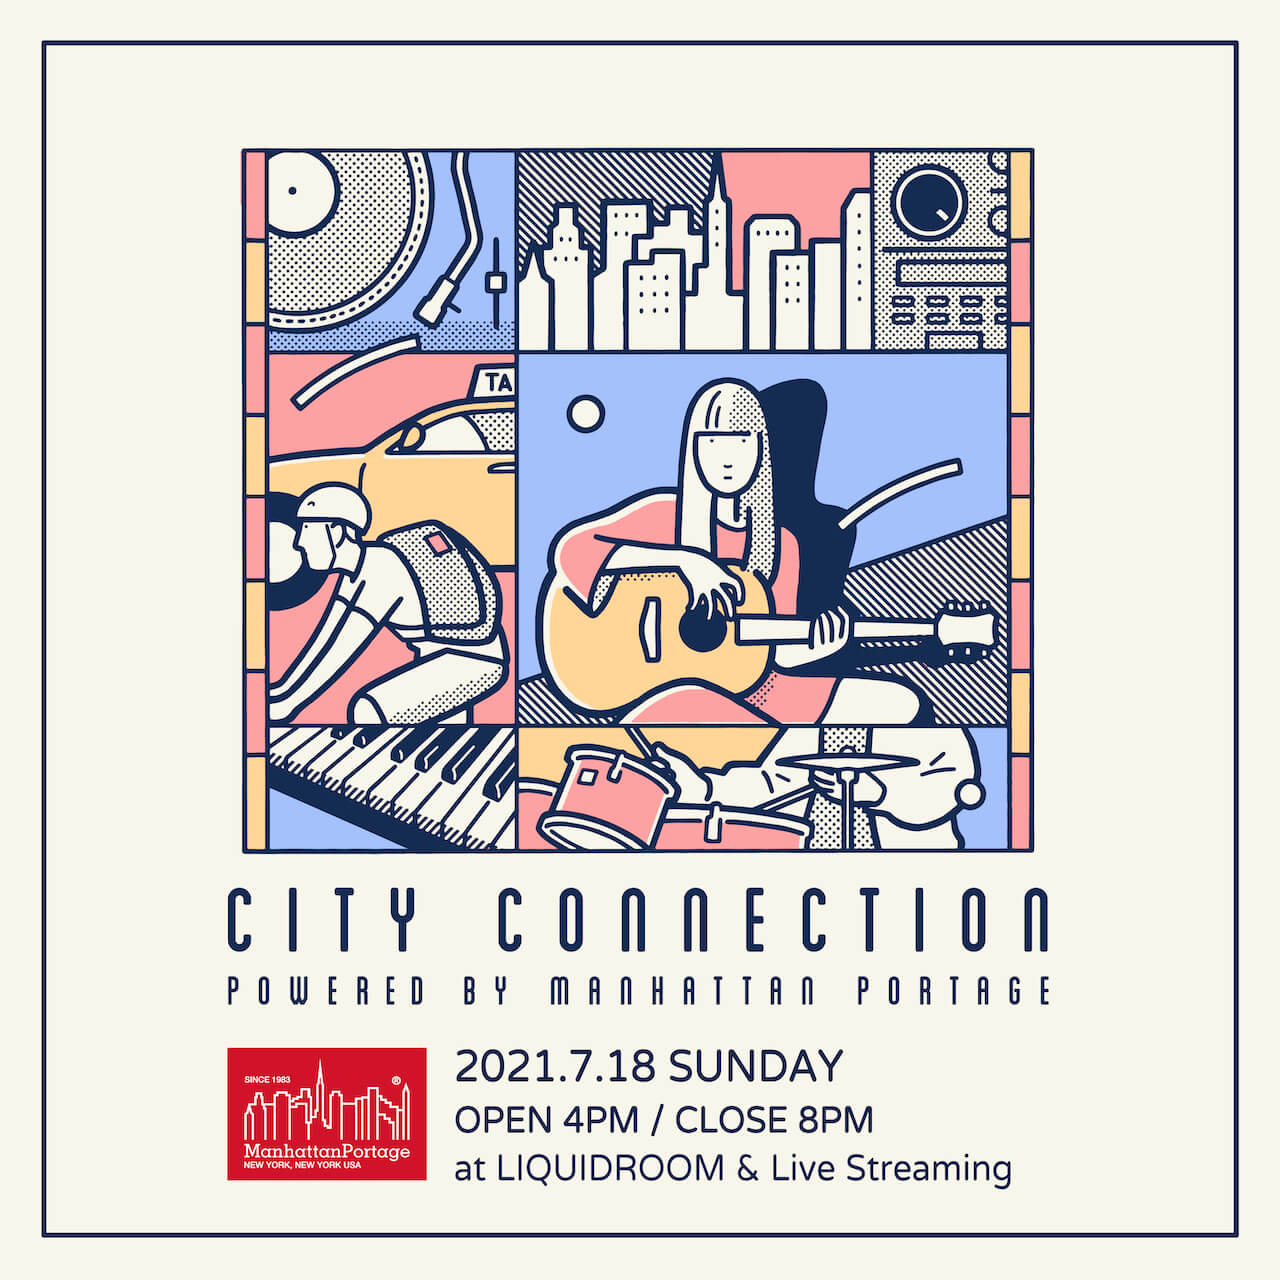 D.A.N.、向井太一、Ryohuらが出演!<City Connection powered by Manhattan Portage>ラインナップ徹底解剖! music210623_city-connection_1